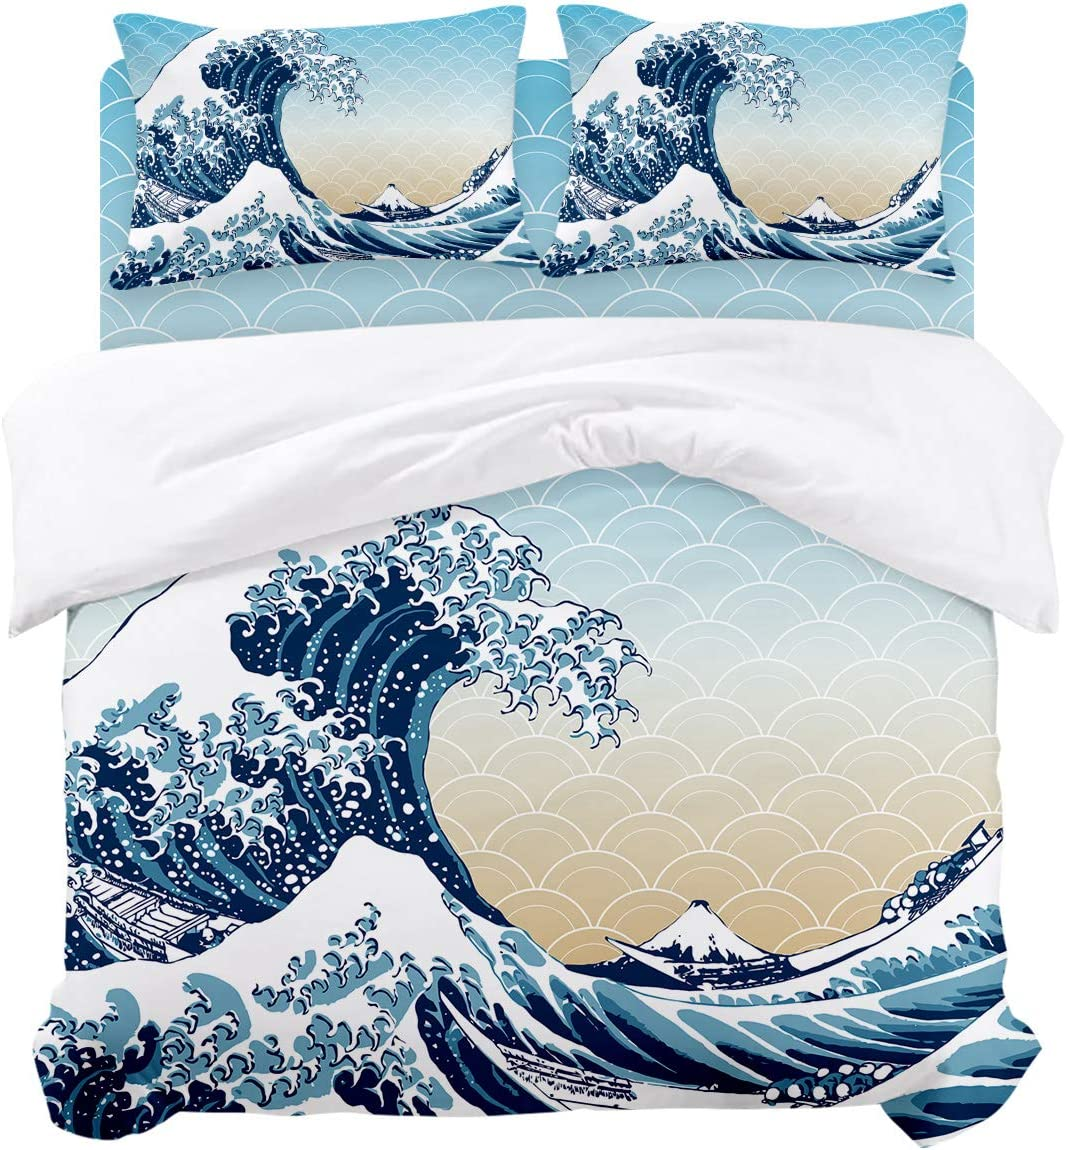 Woloudy King Duvet Cover Set, The Great Wave Off Kanagawa by Katsushika Hokusai Ultra Soft Microfiber 4 Piece Bedding Set Bedspread Comforter Cover and Pillow Shams for Adult/Children/Boys Girls